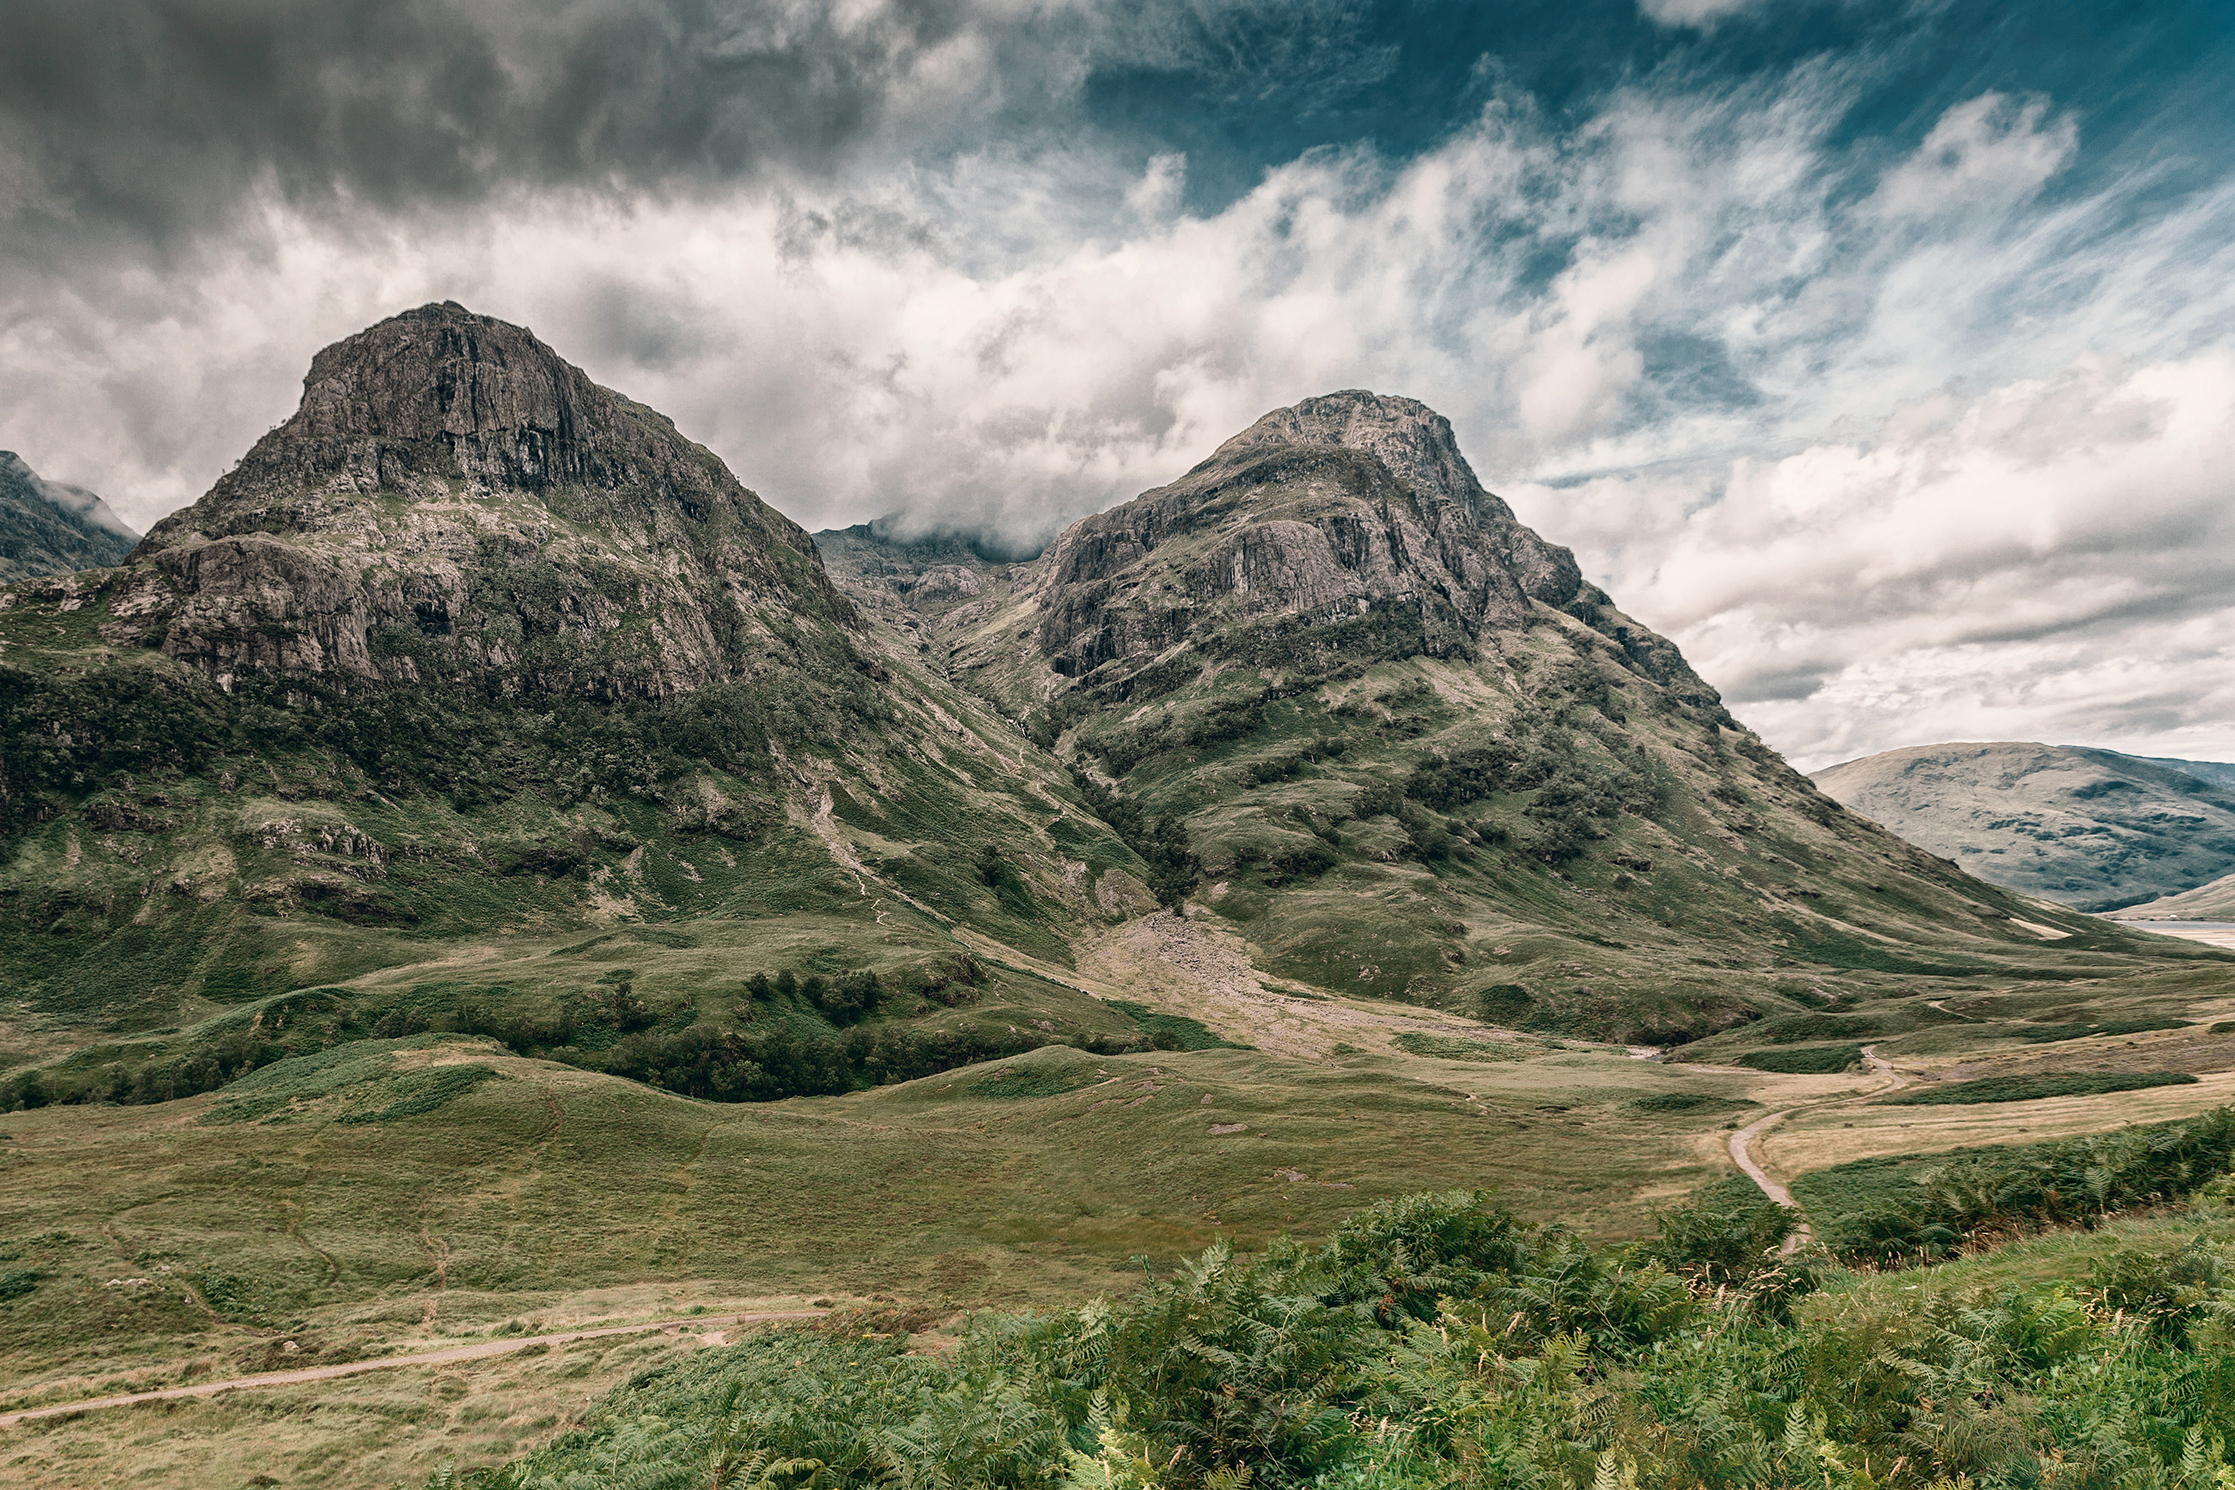 Two mountain peaks in the Scottish Highlands